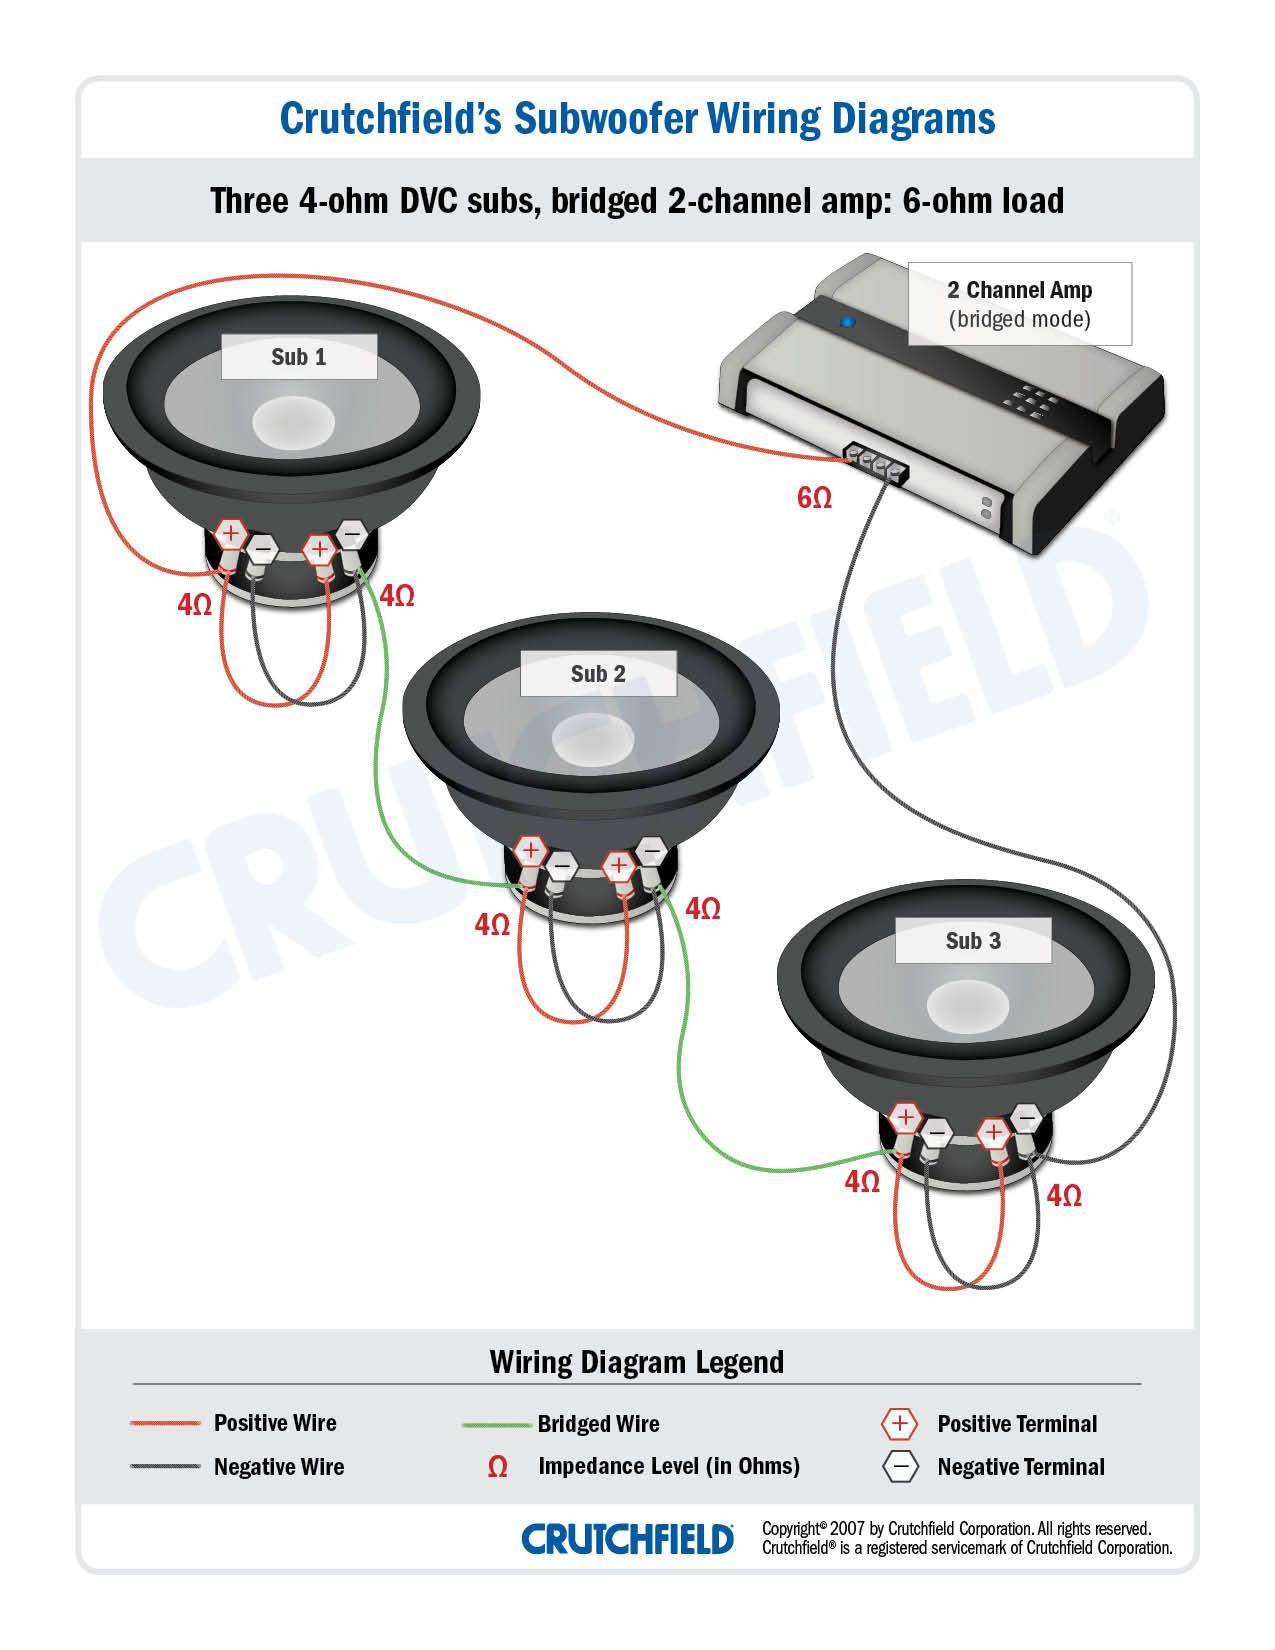 Top 10 Subwoofer Wiring Diagram Free Download 3 Dvc 4 Ohm 2 Ch And Dual 1 Car Audio Systems Car Speaker Box Subwoofer Wiring Subwoofer Car Audio Installation